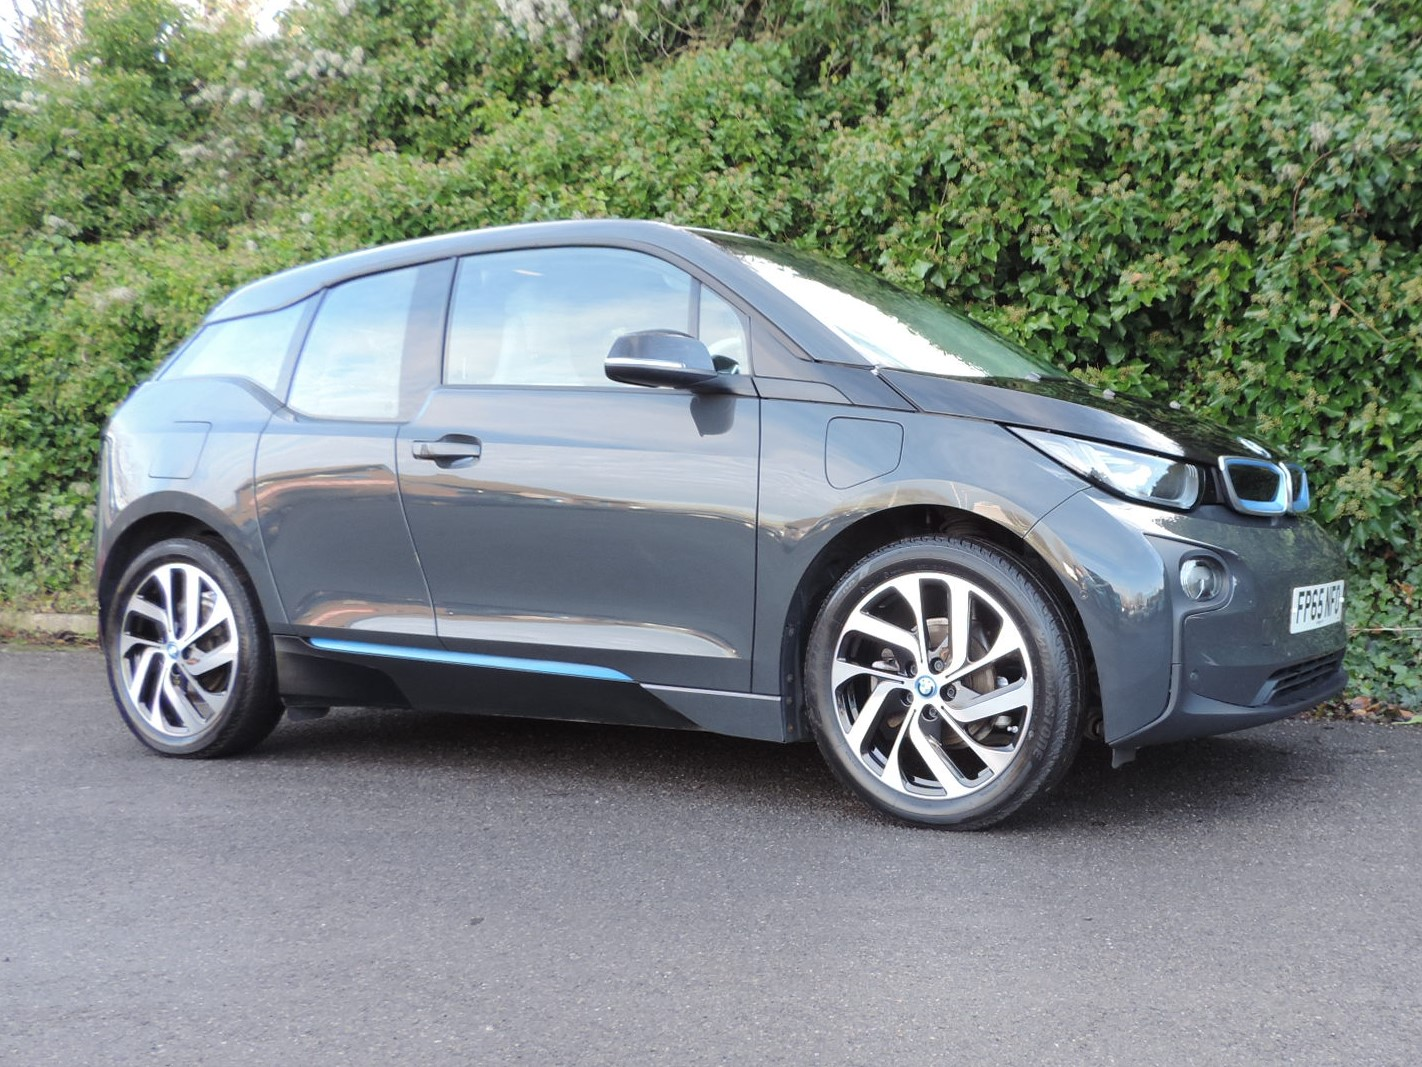 BMW i3 60Ah REX (2015) Arravani Grey / Loft interior